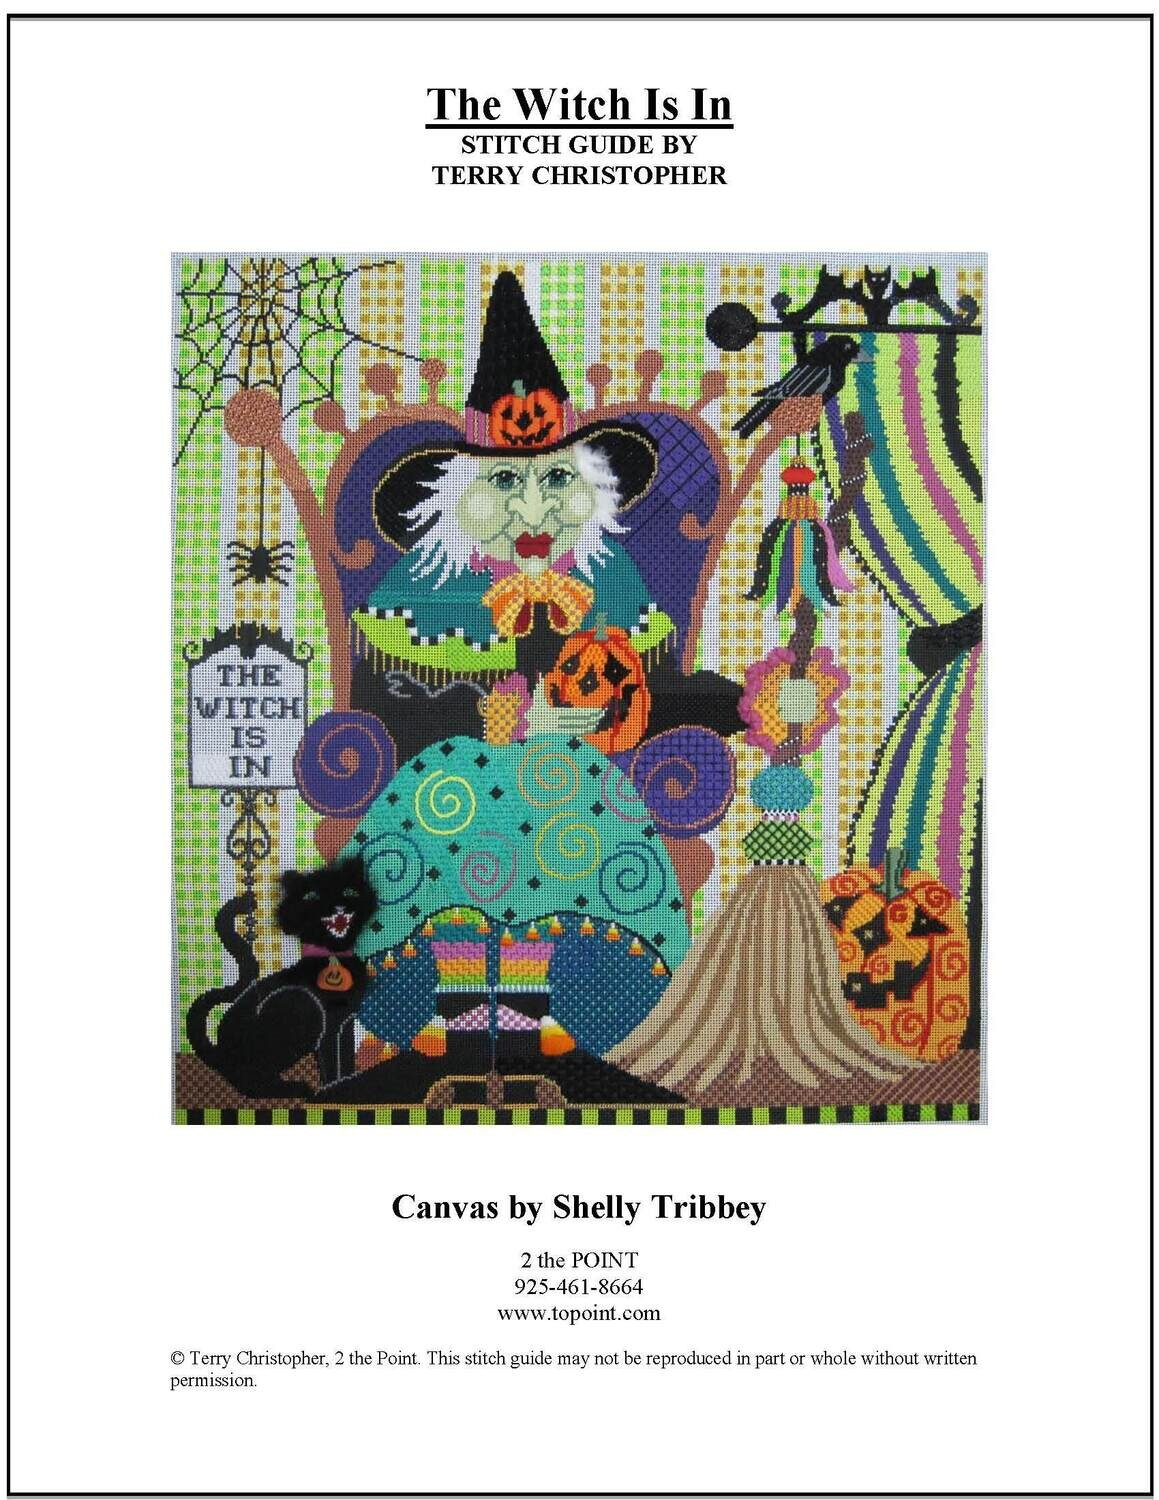 Shelly Tribbey, The Witch is In